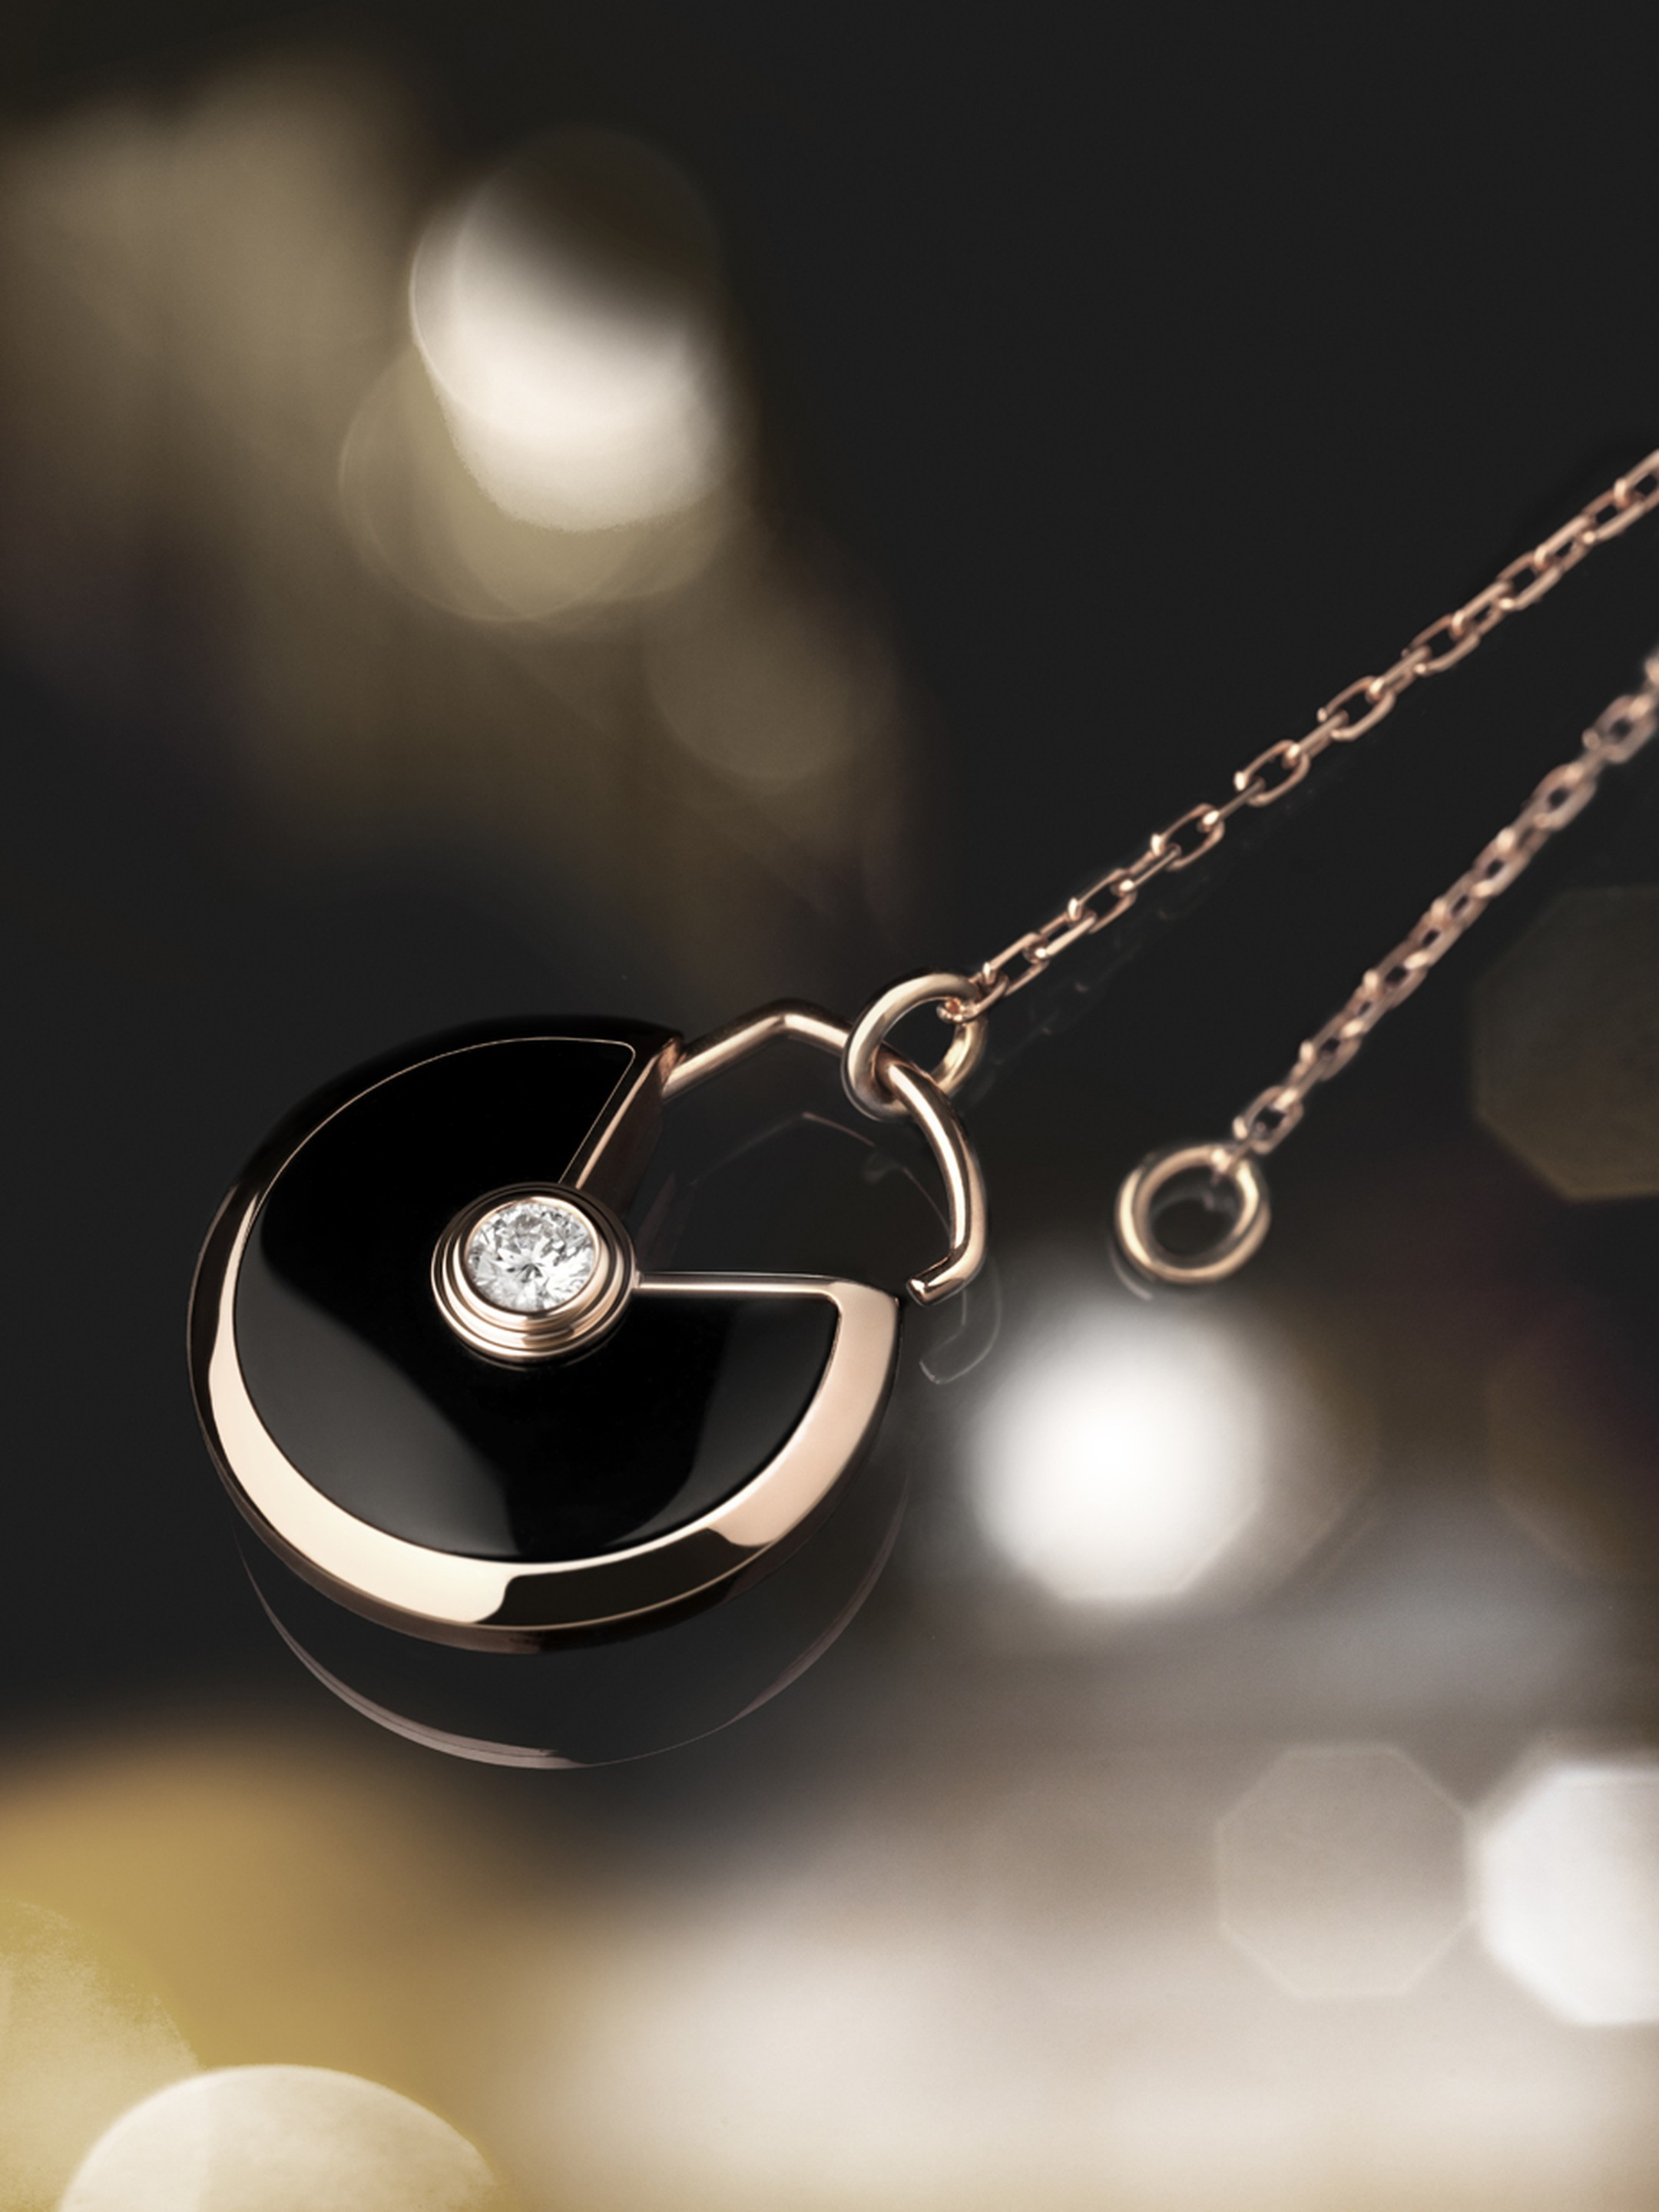 Amulette de Cartier small pink gold pendant with onyx surrounding a brilliant-cut diamond.